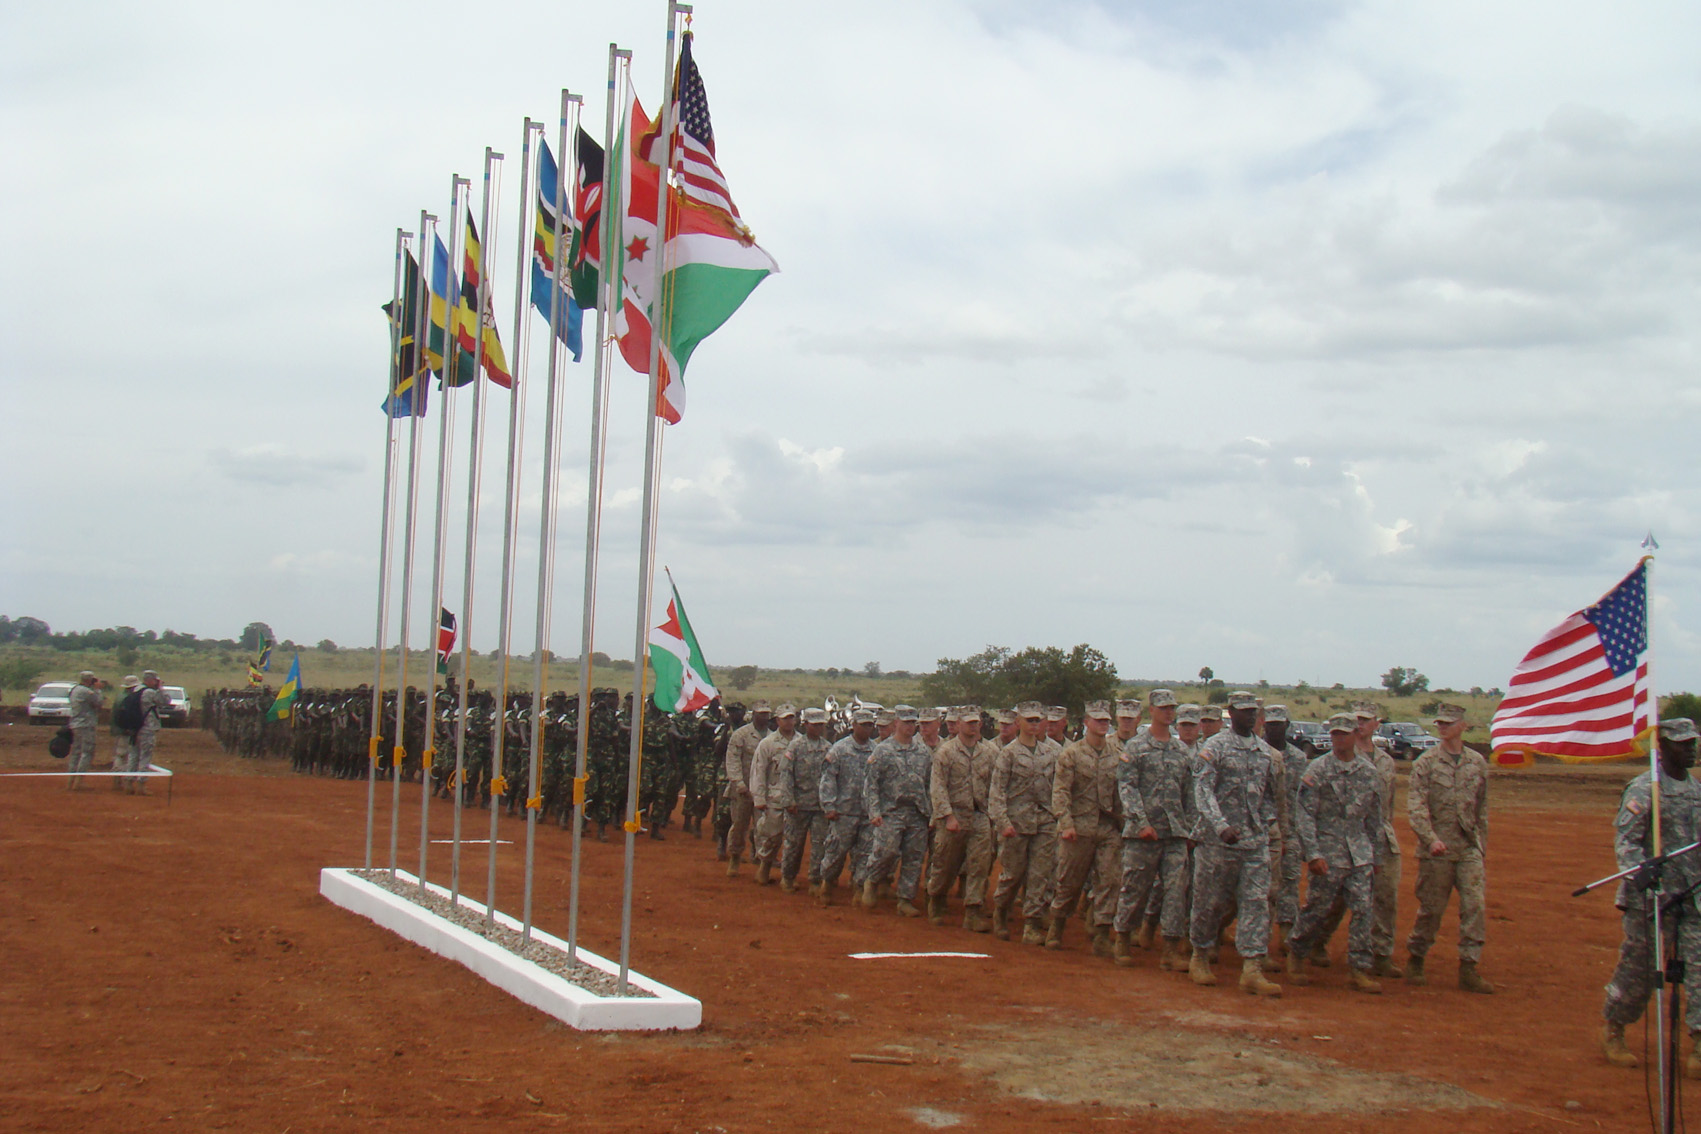 Soldiers from the United States and five east African countries march in Kitgum, northern Uganda, as part of Natural Fire 10, a 10-day exercise aimed at boosting capacity in fighting terrorism and responding to humanitarian crises